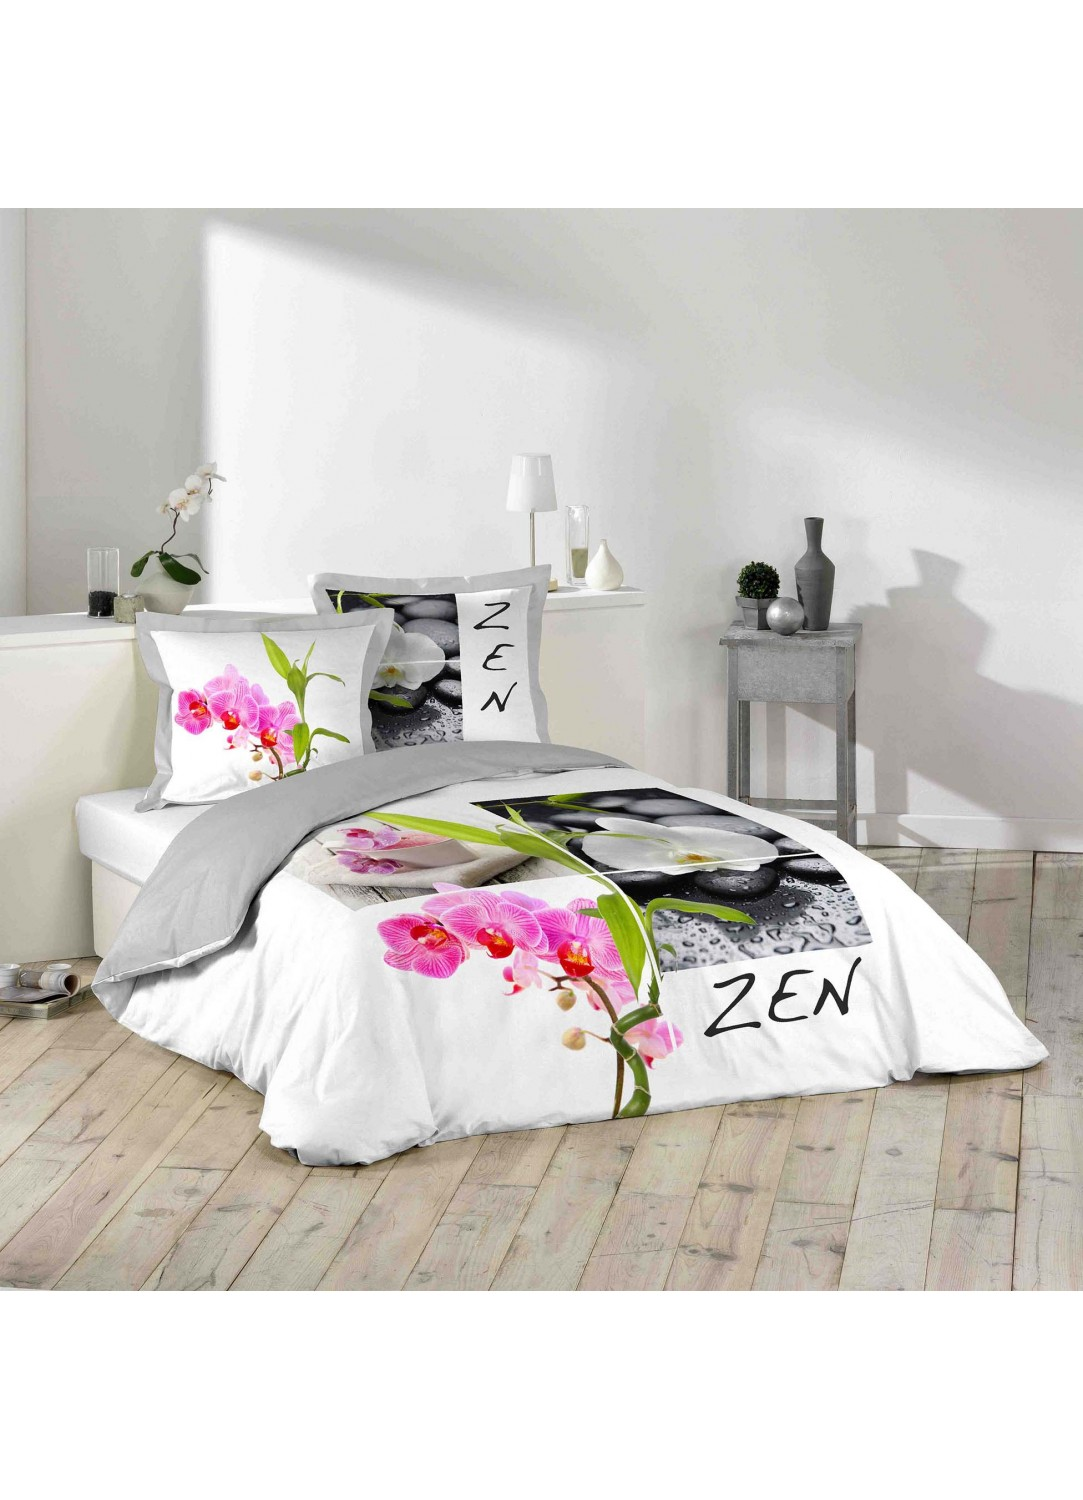 parure de lit imprim e 2 personnes zen blanc et gris homemaison vente en ligne parures. Black Bedroom Furniture Sets. Home Design Ideas